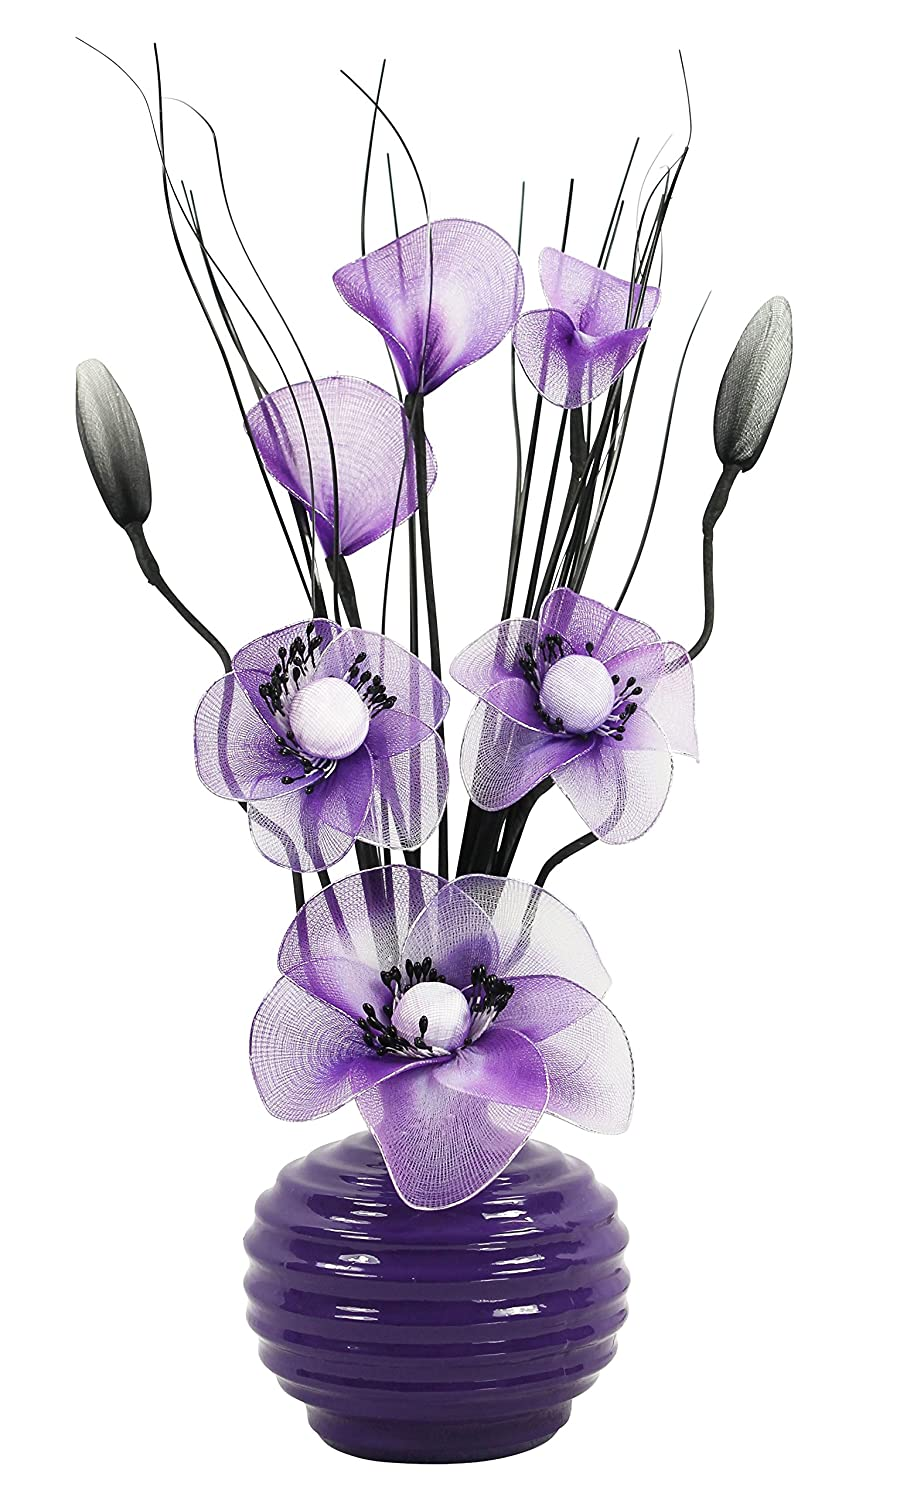 Purple Vase with Purple and White Artificial Flowers, Ornaments for Living Room, Window Sill, Home Accessories, 32cm Flourish 723217